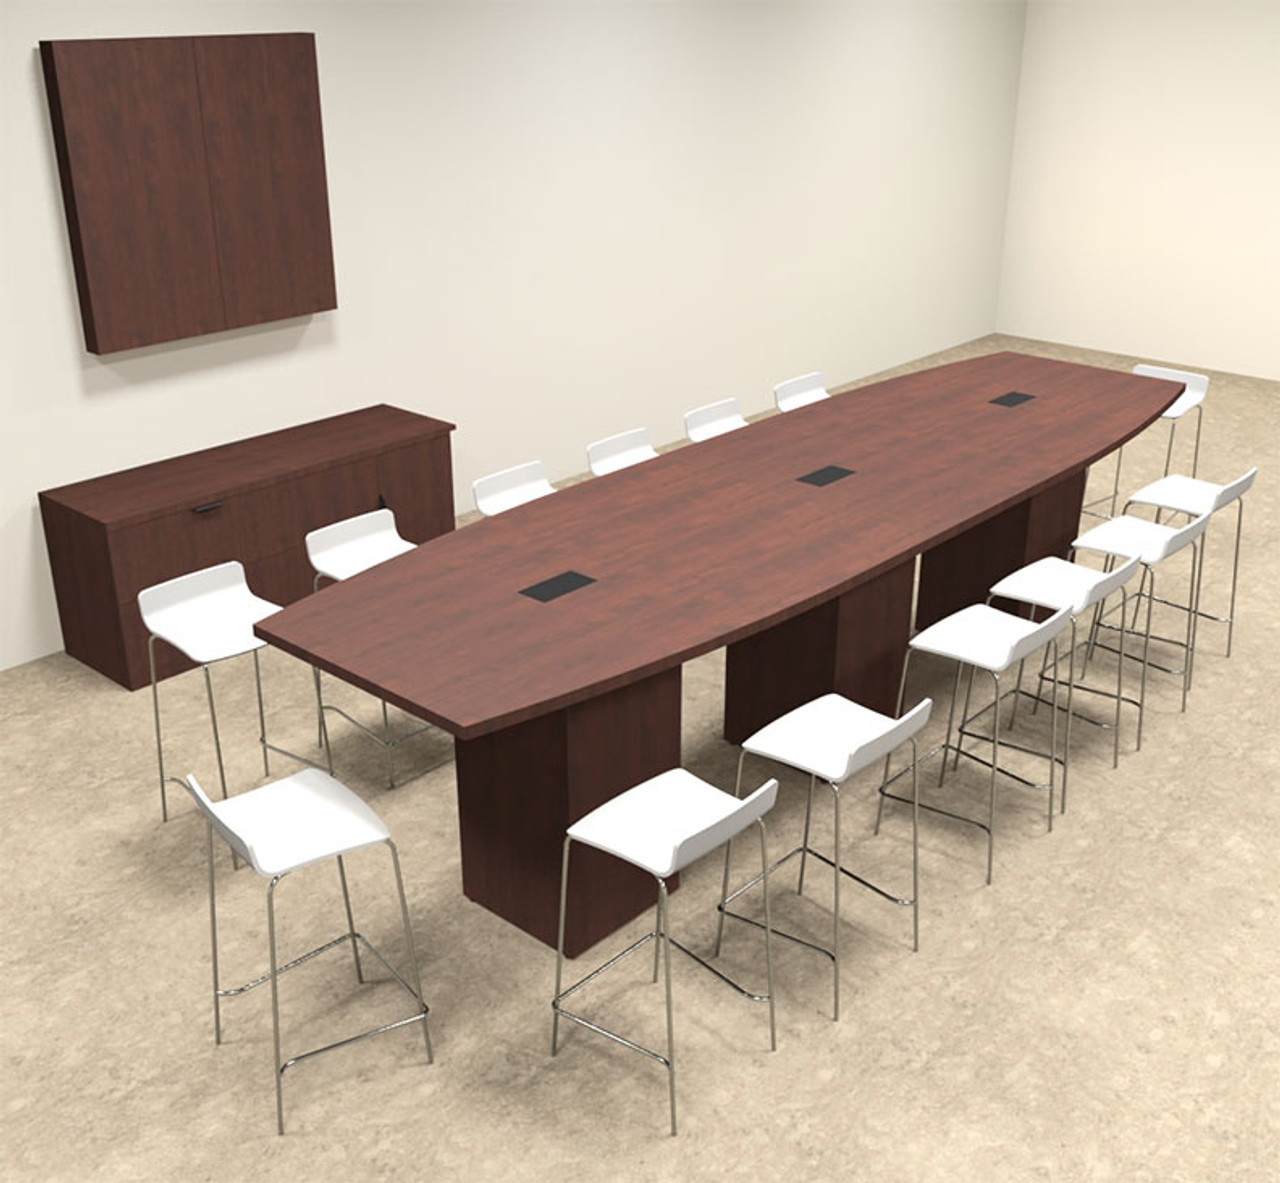 Boat Shape Counter Height 14' Feet Conference Table, #OF-CON-CT15